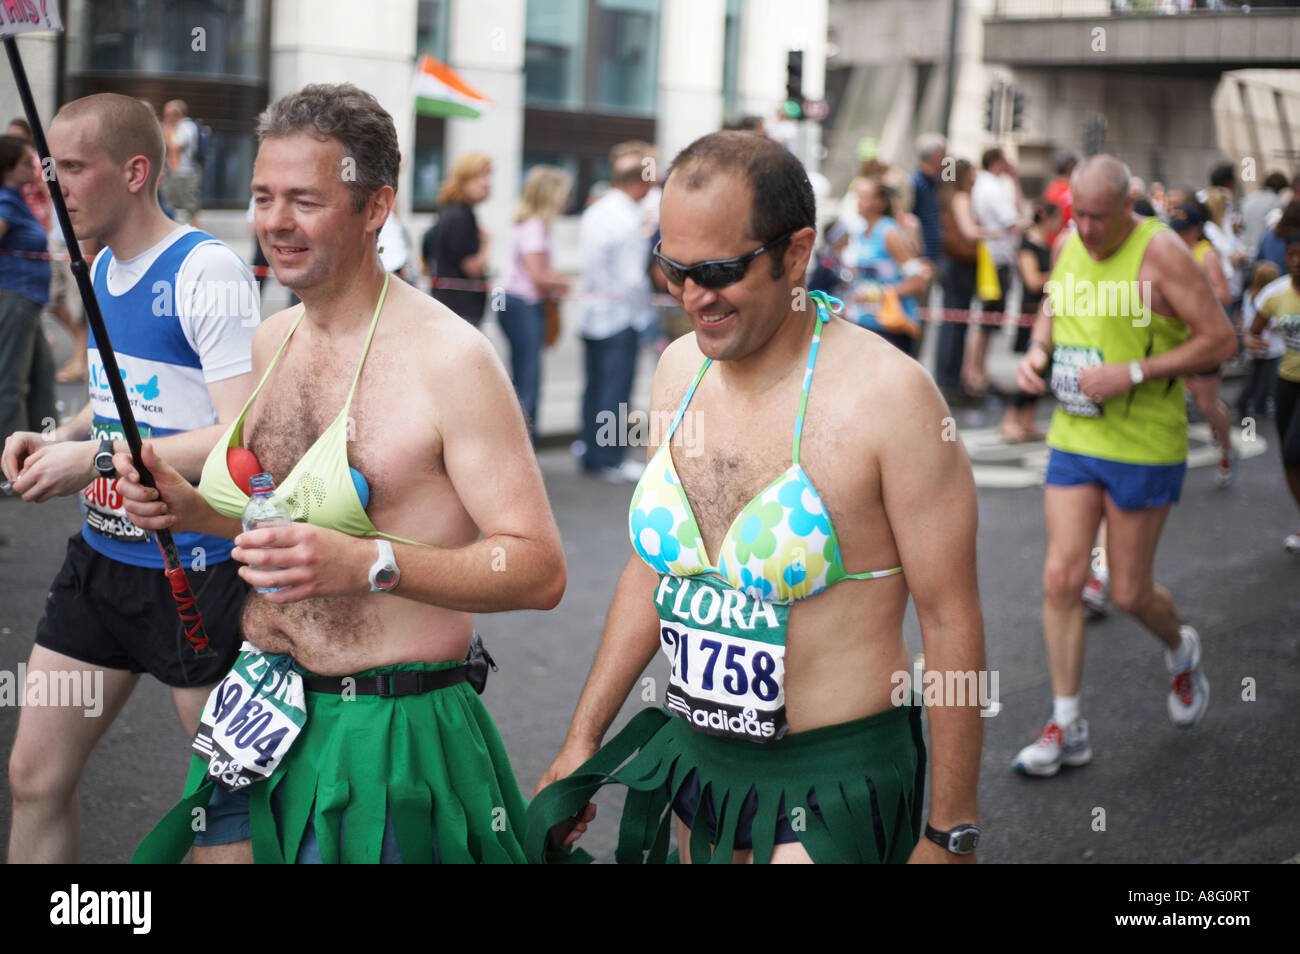 London Marathon runners in bras and skirts 2007 - Stock Image